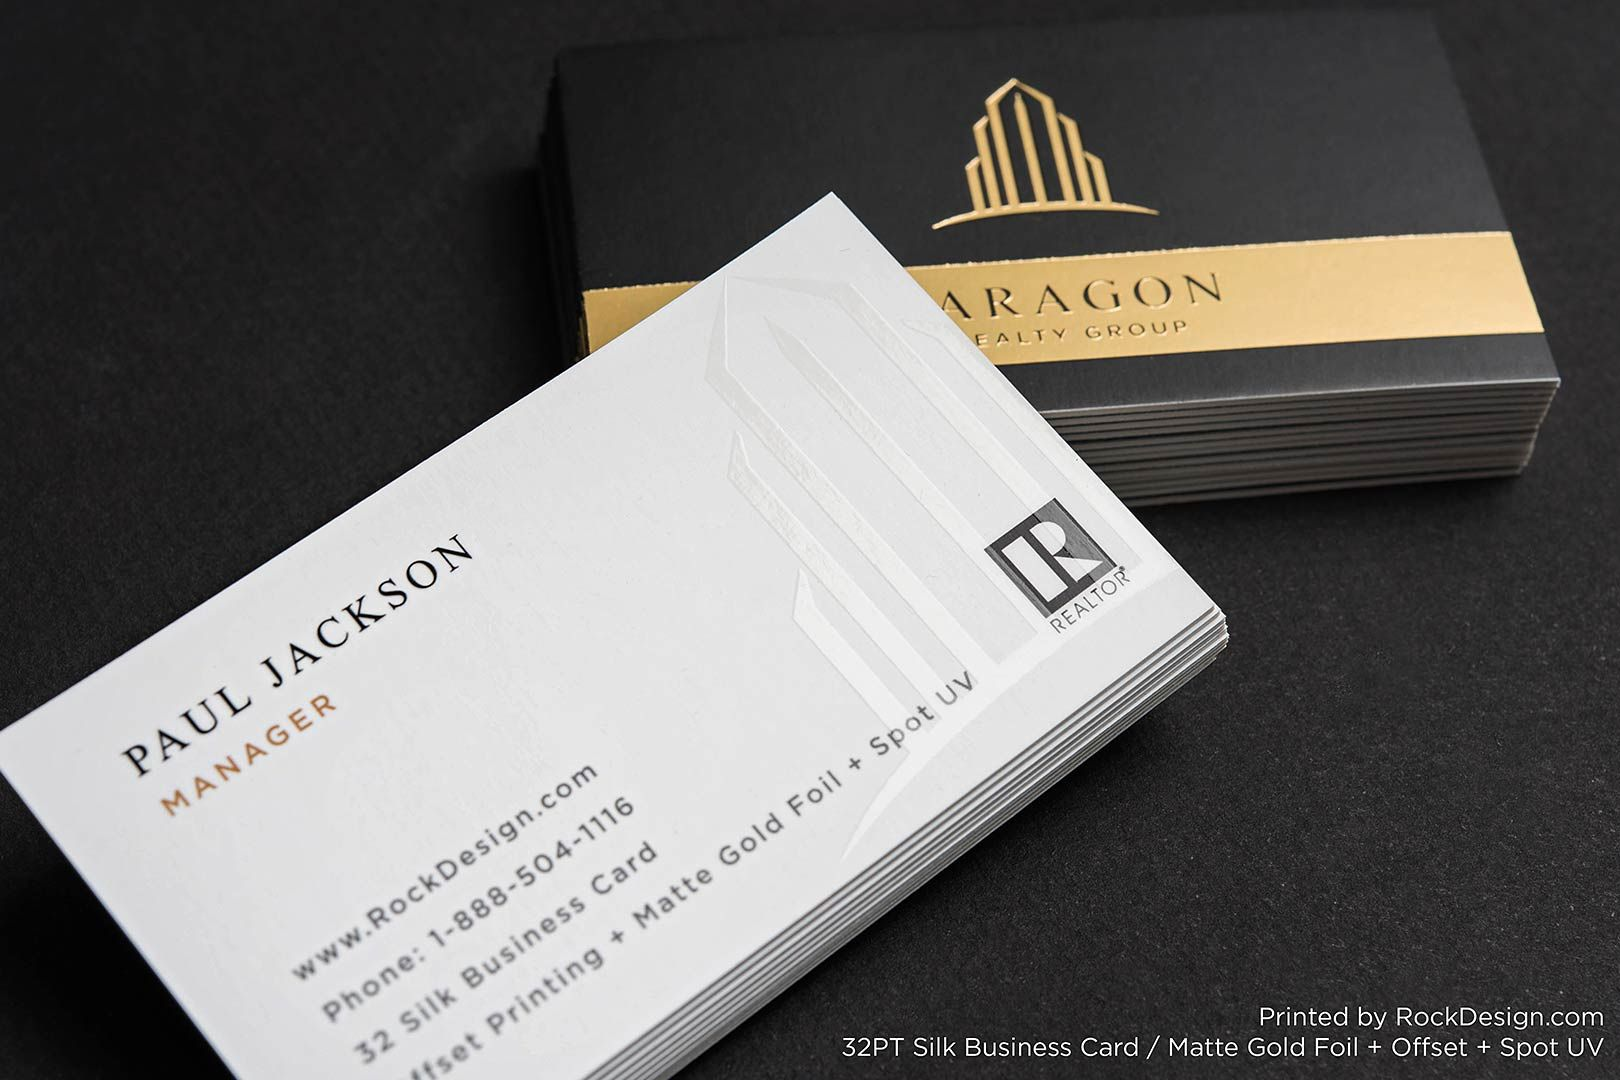 32pt silk business cards rockdesign shehri pinterest 32pt silk business cards rockdesign colourmoves Gallery